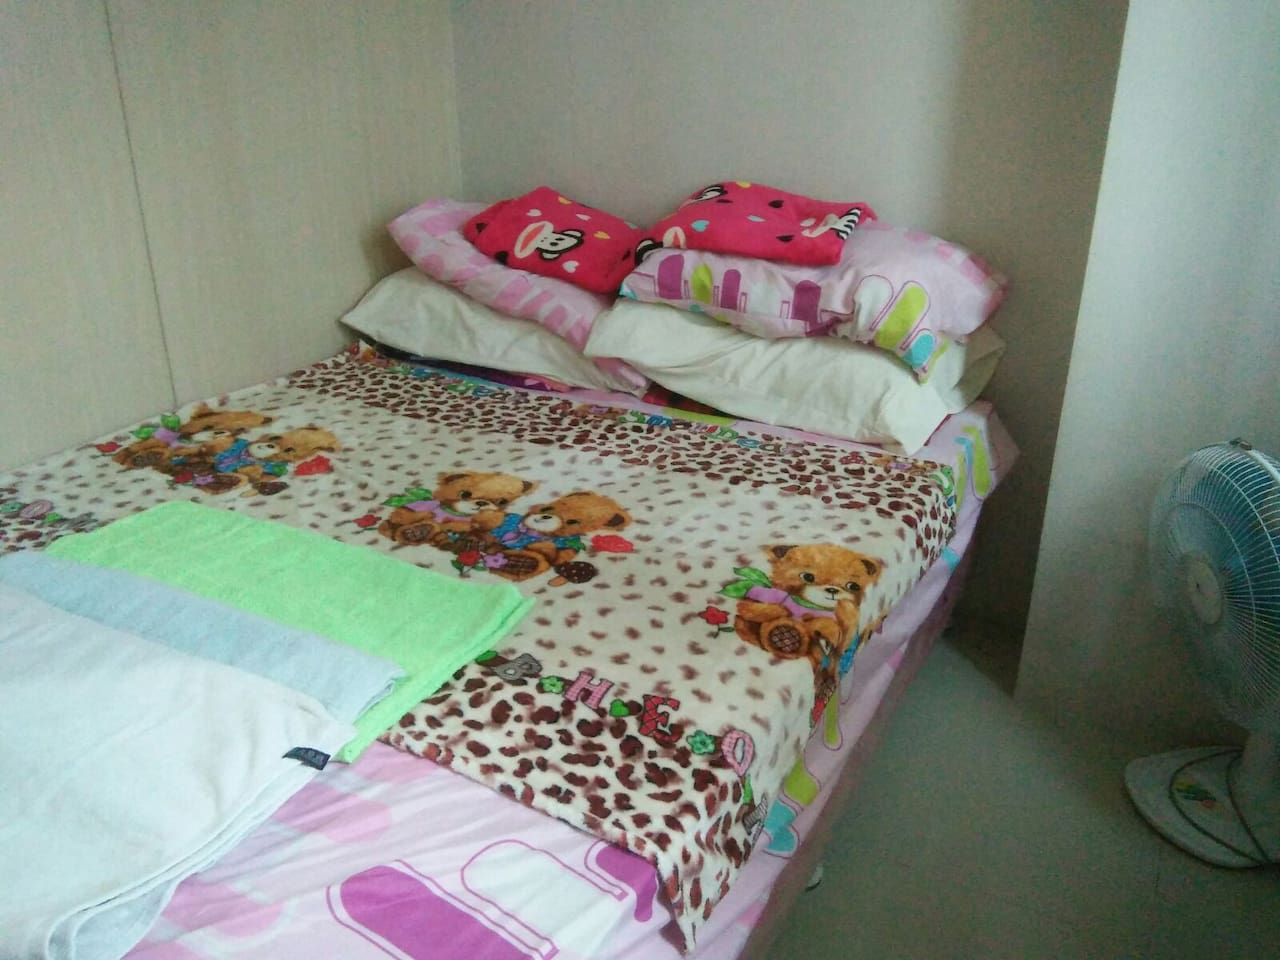 bedroom with 3 towels provided 5 pillows and 5 blankets